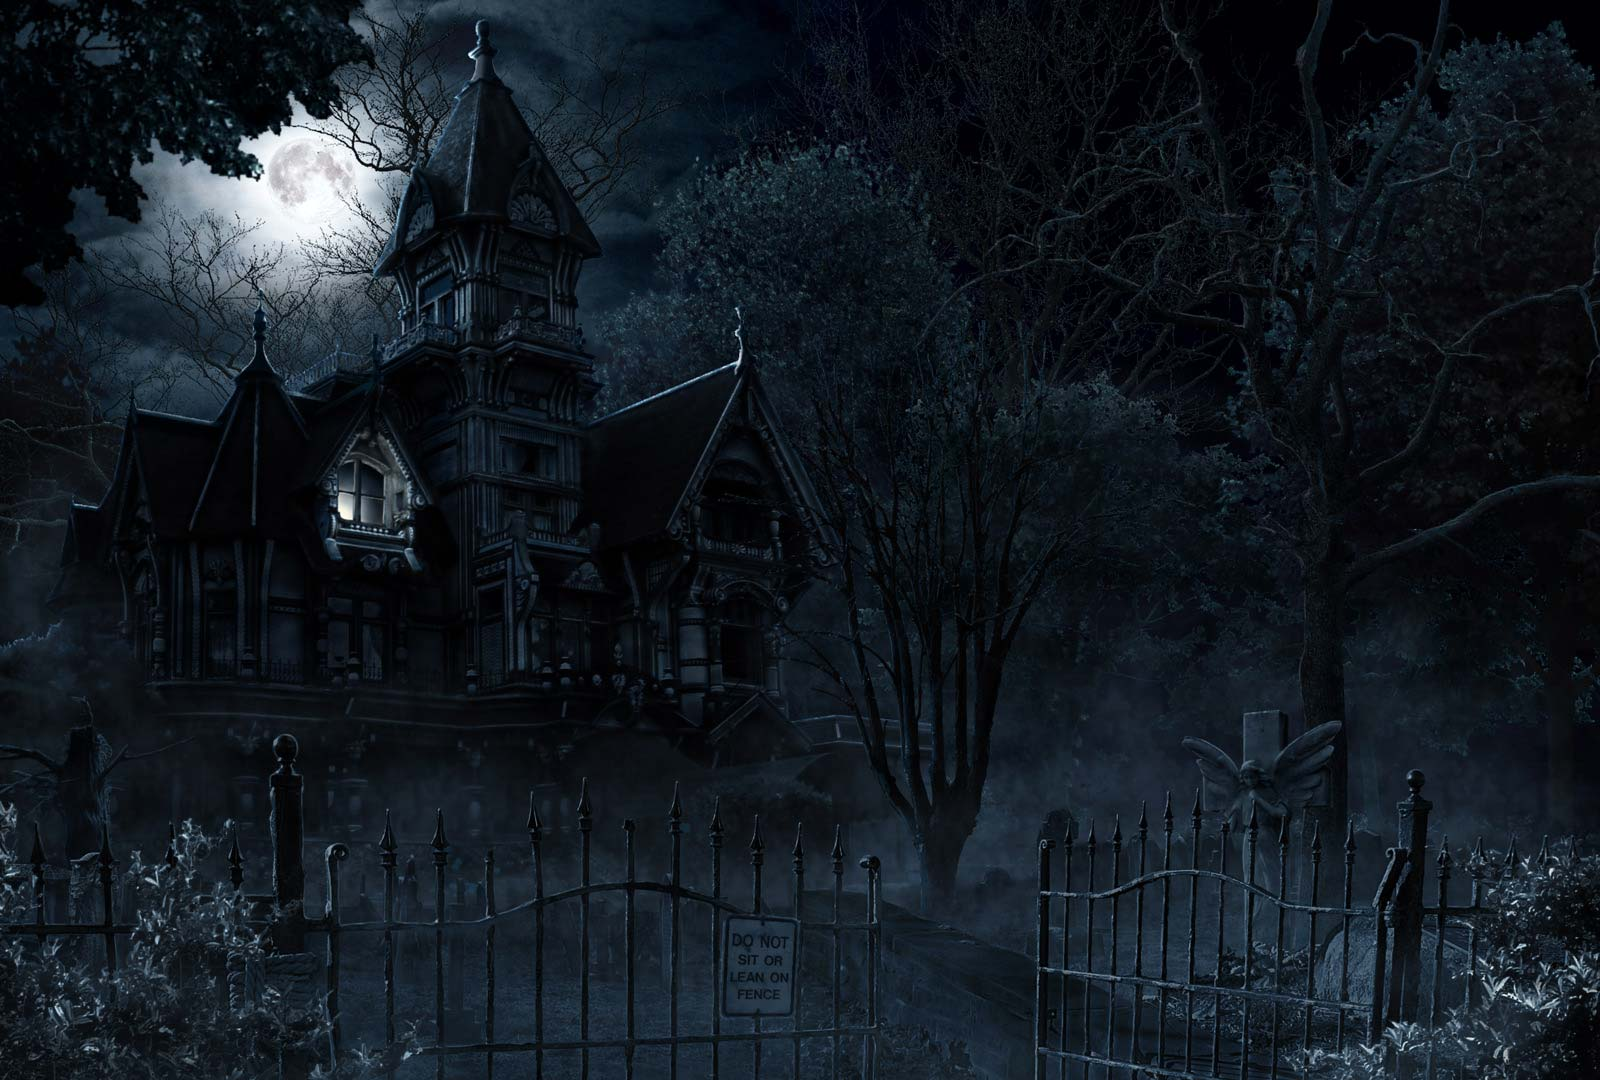 Dark Fantasy Background Wallpaper 2018 Nr58: Haunted House And Mansion (Ghost